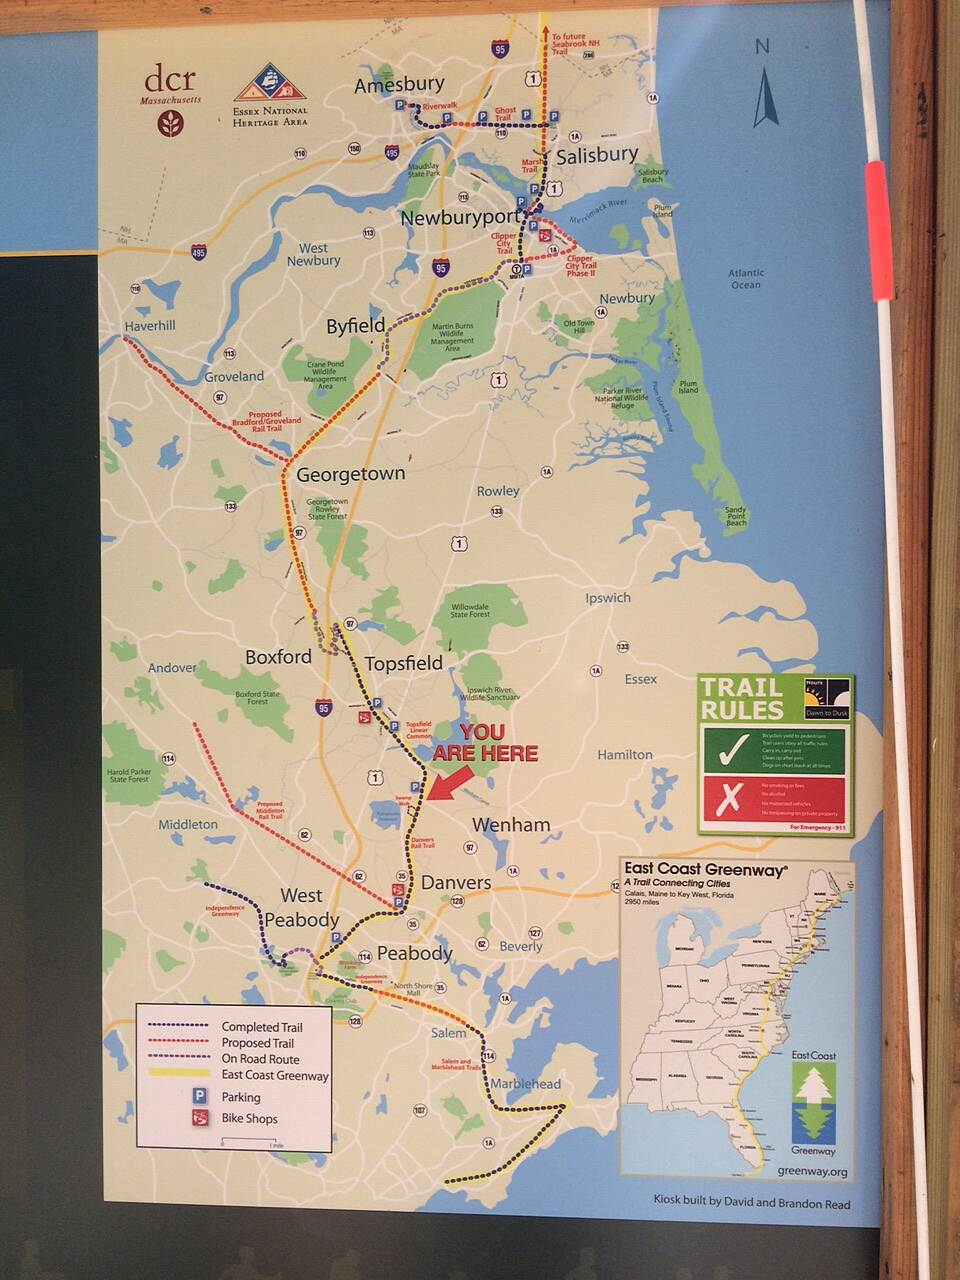 Border to Boston Trail DCR Trailside Map  DCR map located near start of Topsfield Linear Common shows Danvers, Wenham and Topsfield sections of trail.